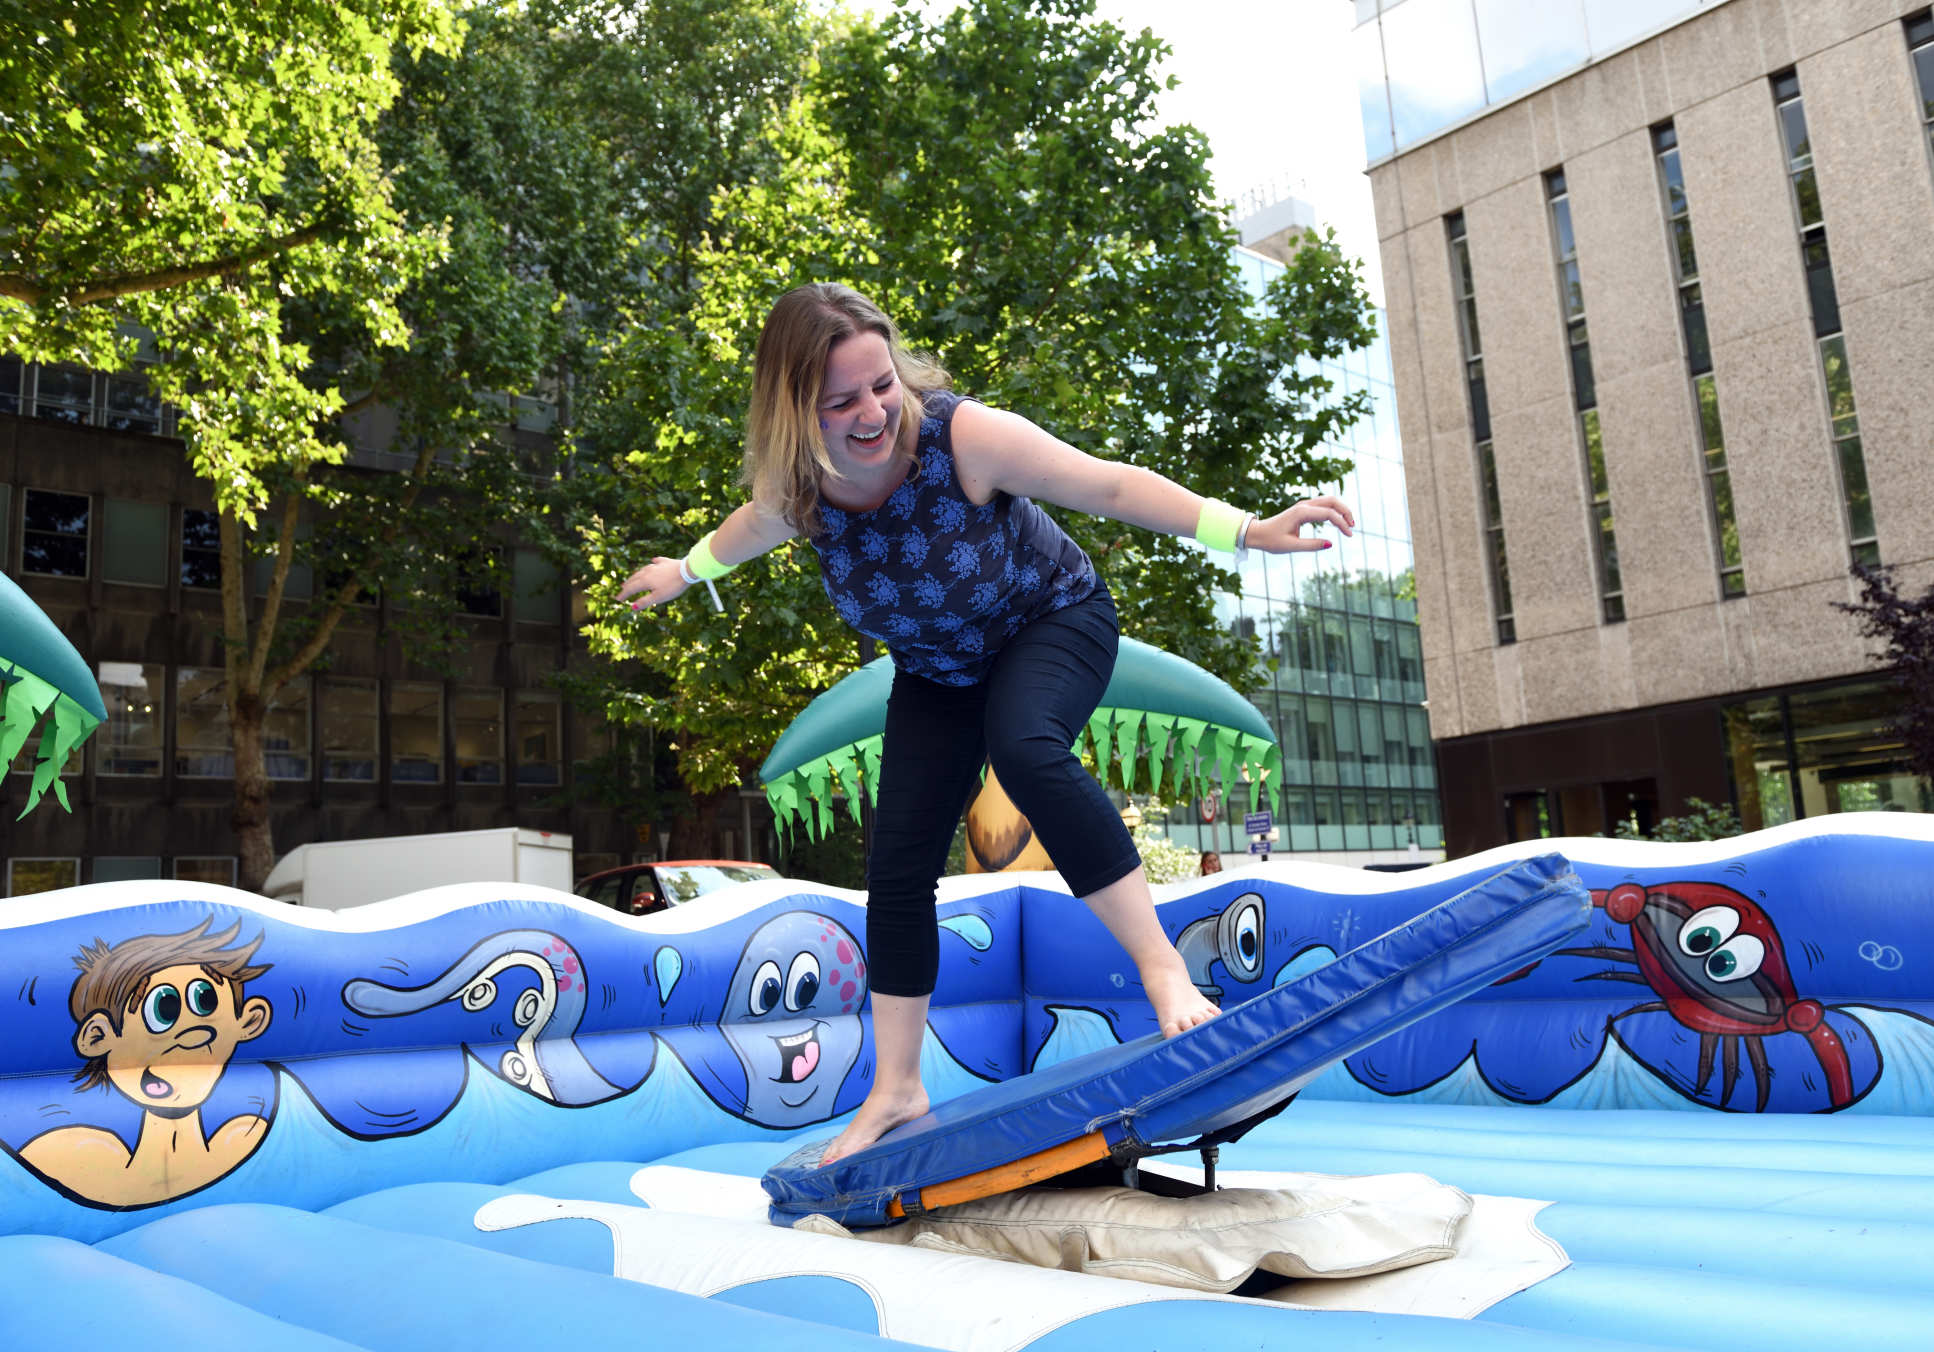 A staff member tries out surfing on an inflatable surfboard